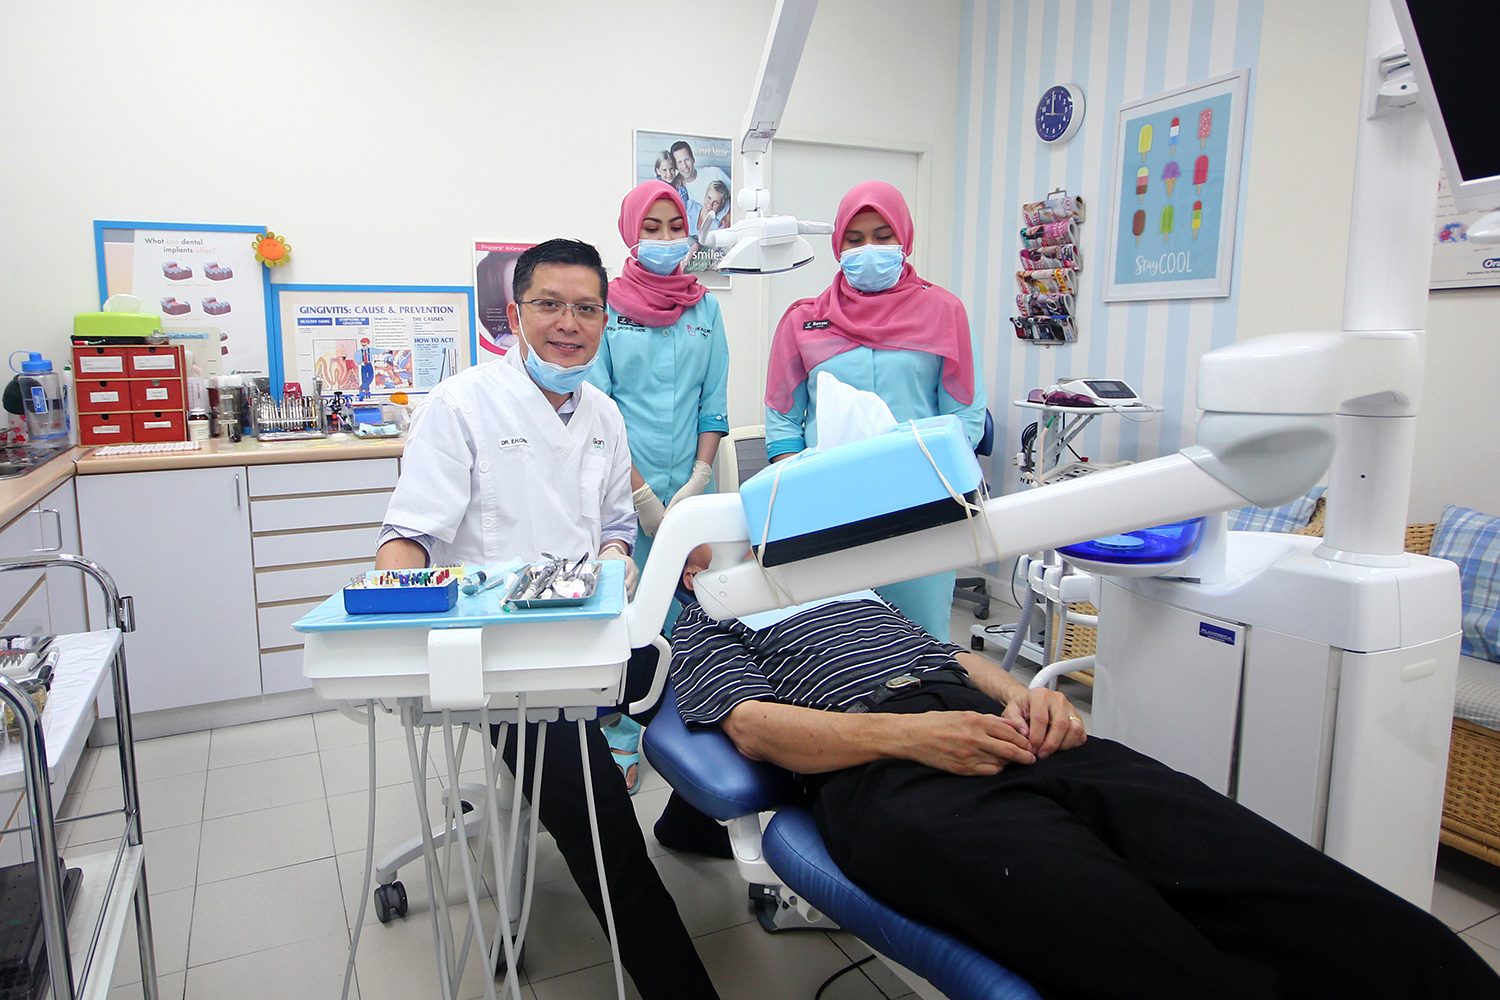 The Curve - The Smile Clinic